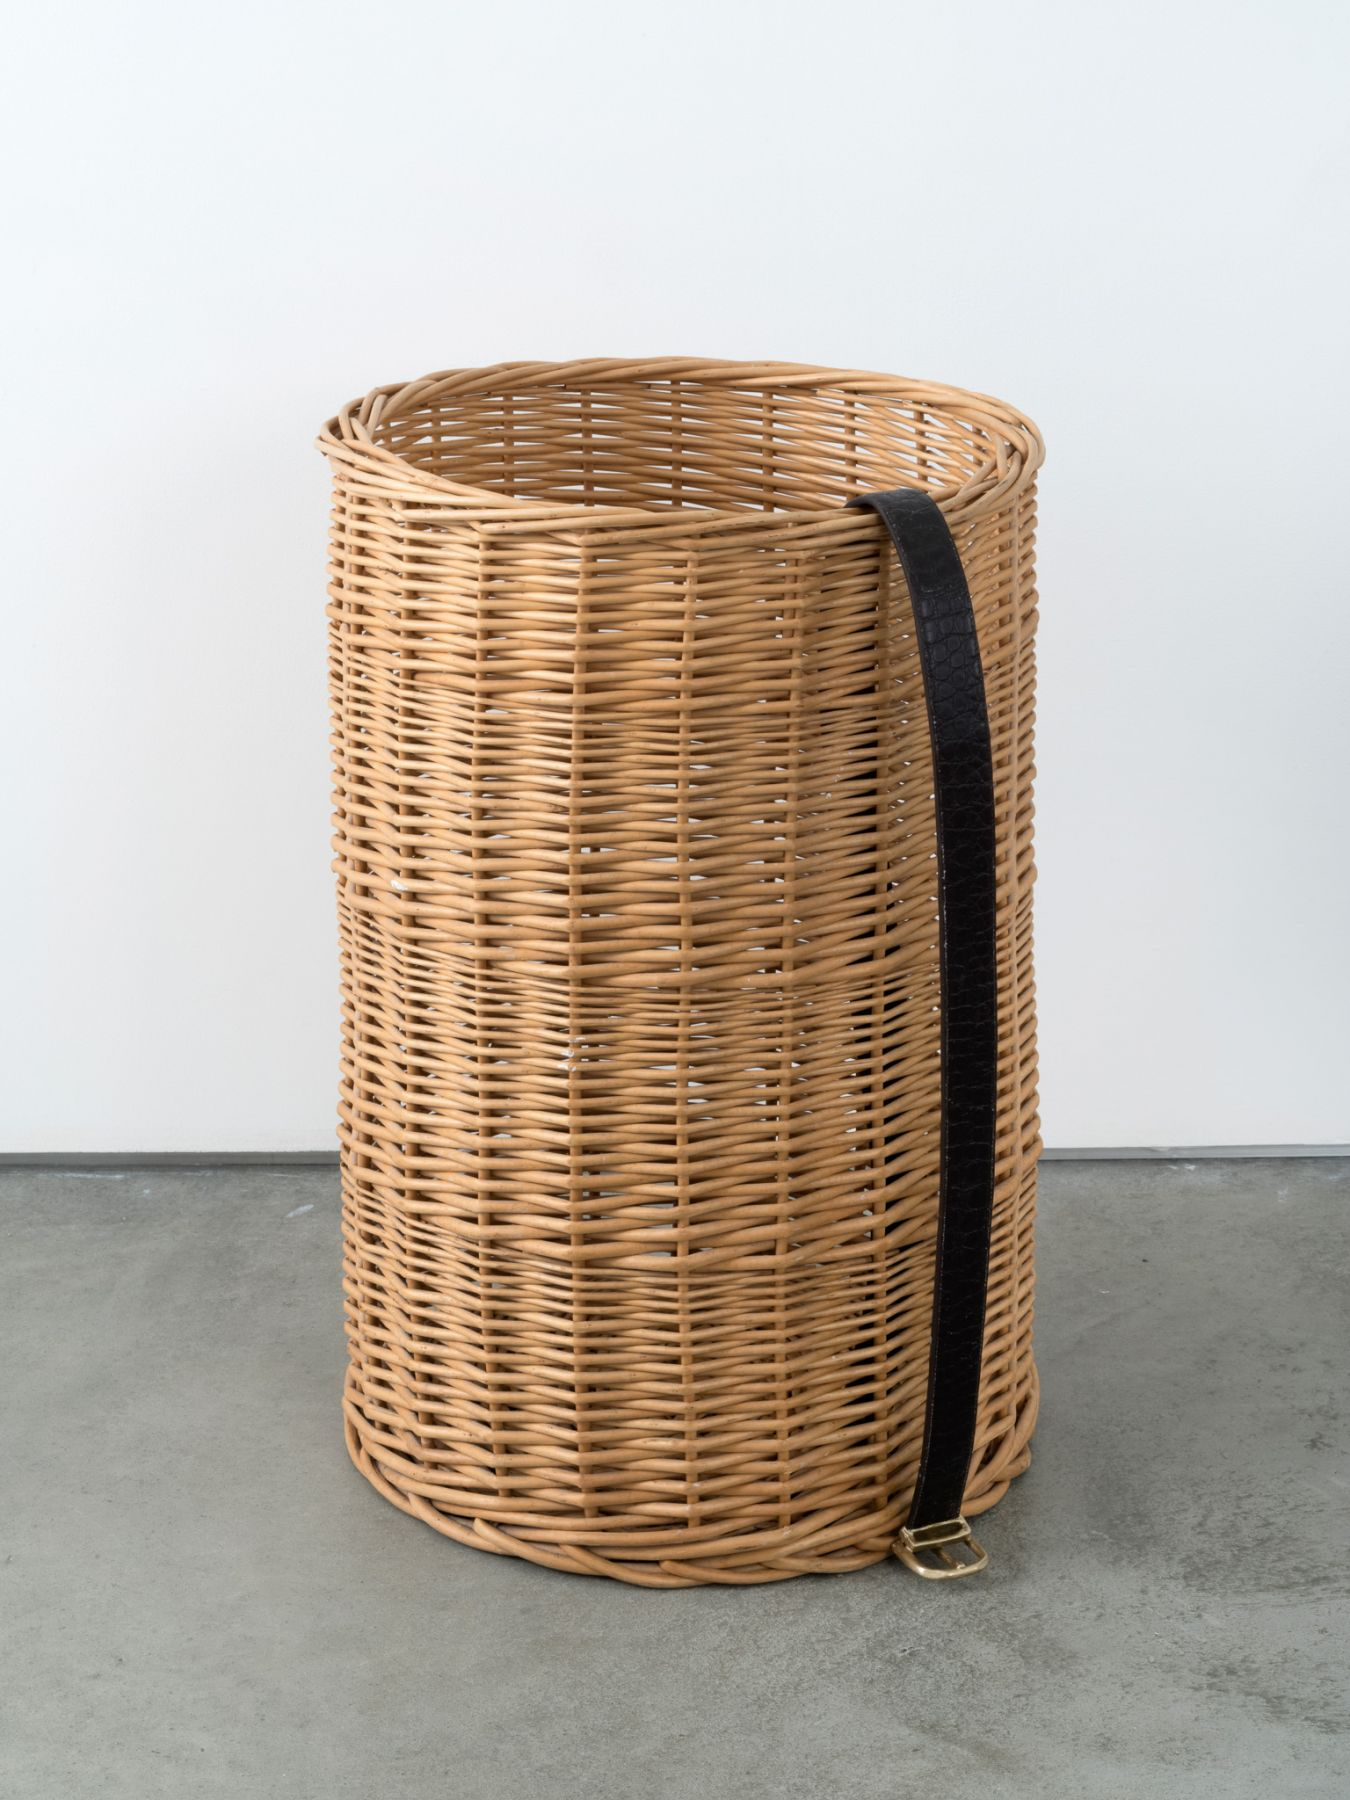 Valentin Carron, Belt on rattan basket, 2014